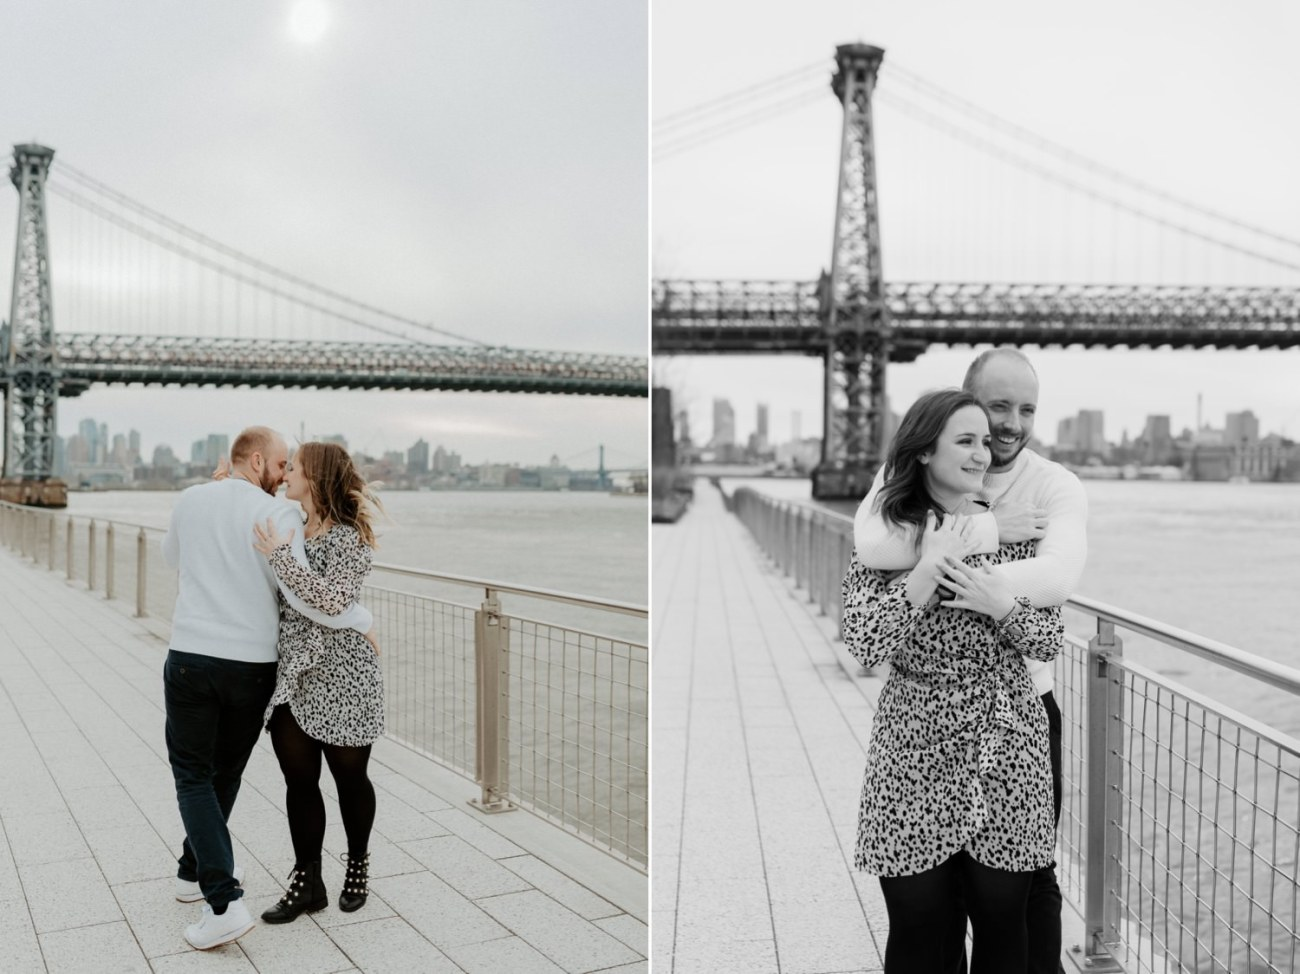 Williamsburg Brooklyn Couple Session Brooklyn Bridge Couple Photos Anais Possamai Photography 09